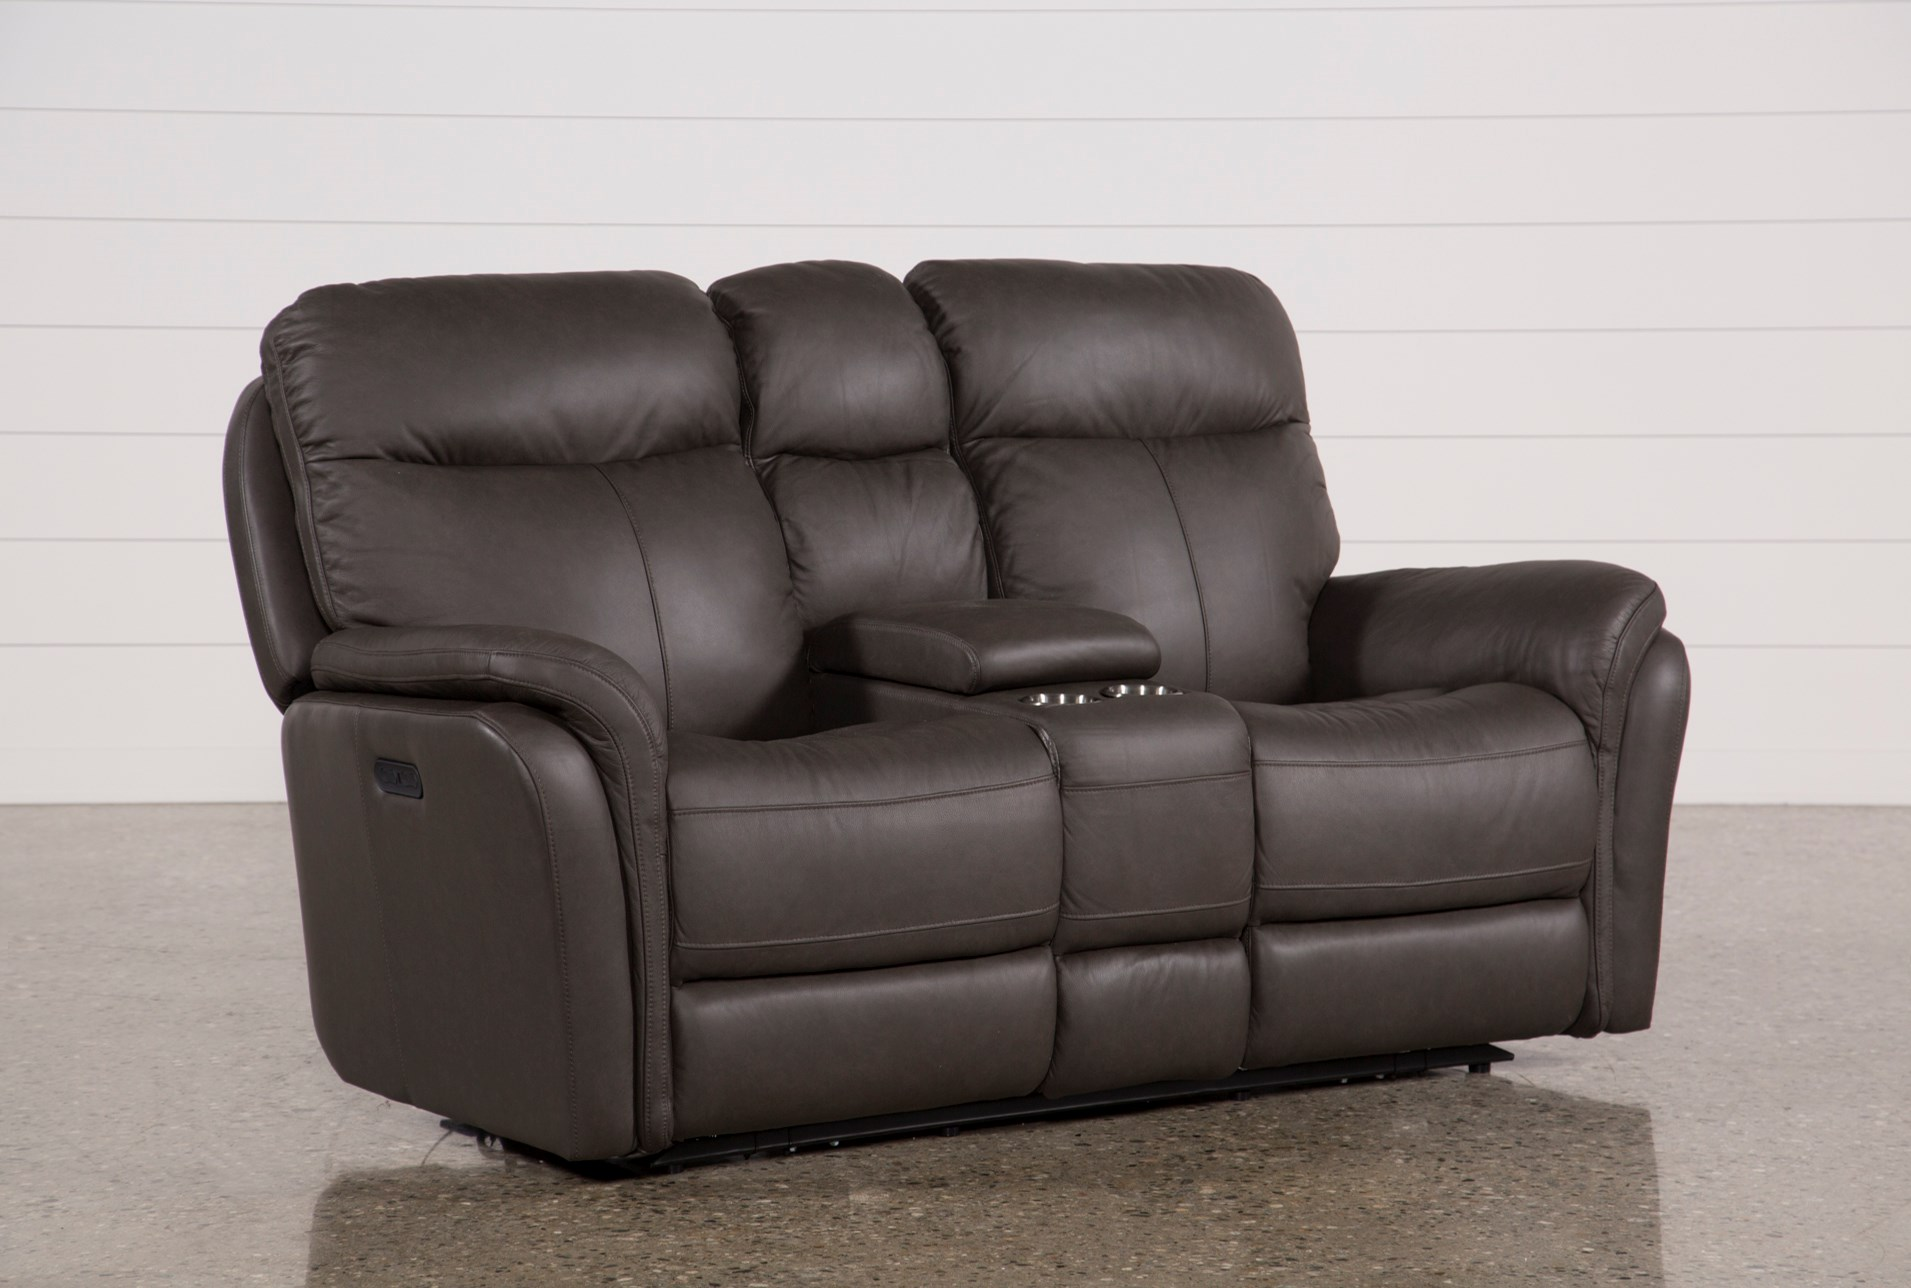 Bowie Leather Power Reclining Loveseat W/Console & Power Headrest ...